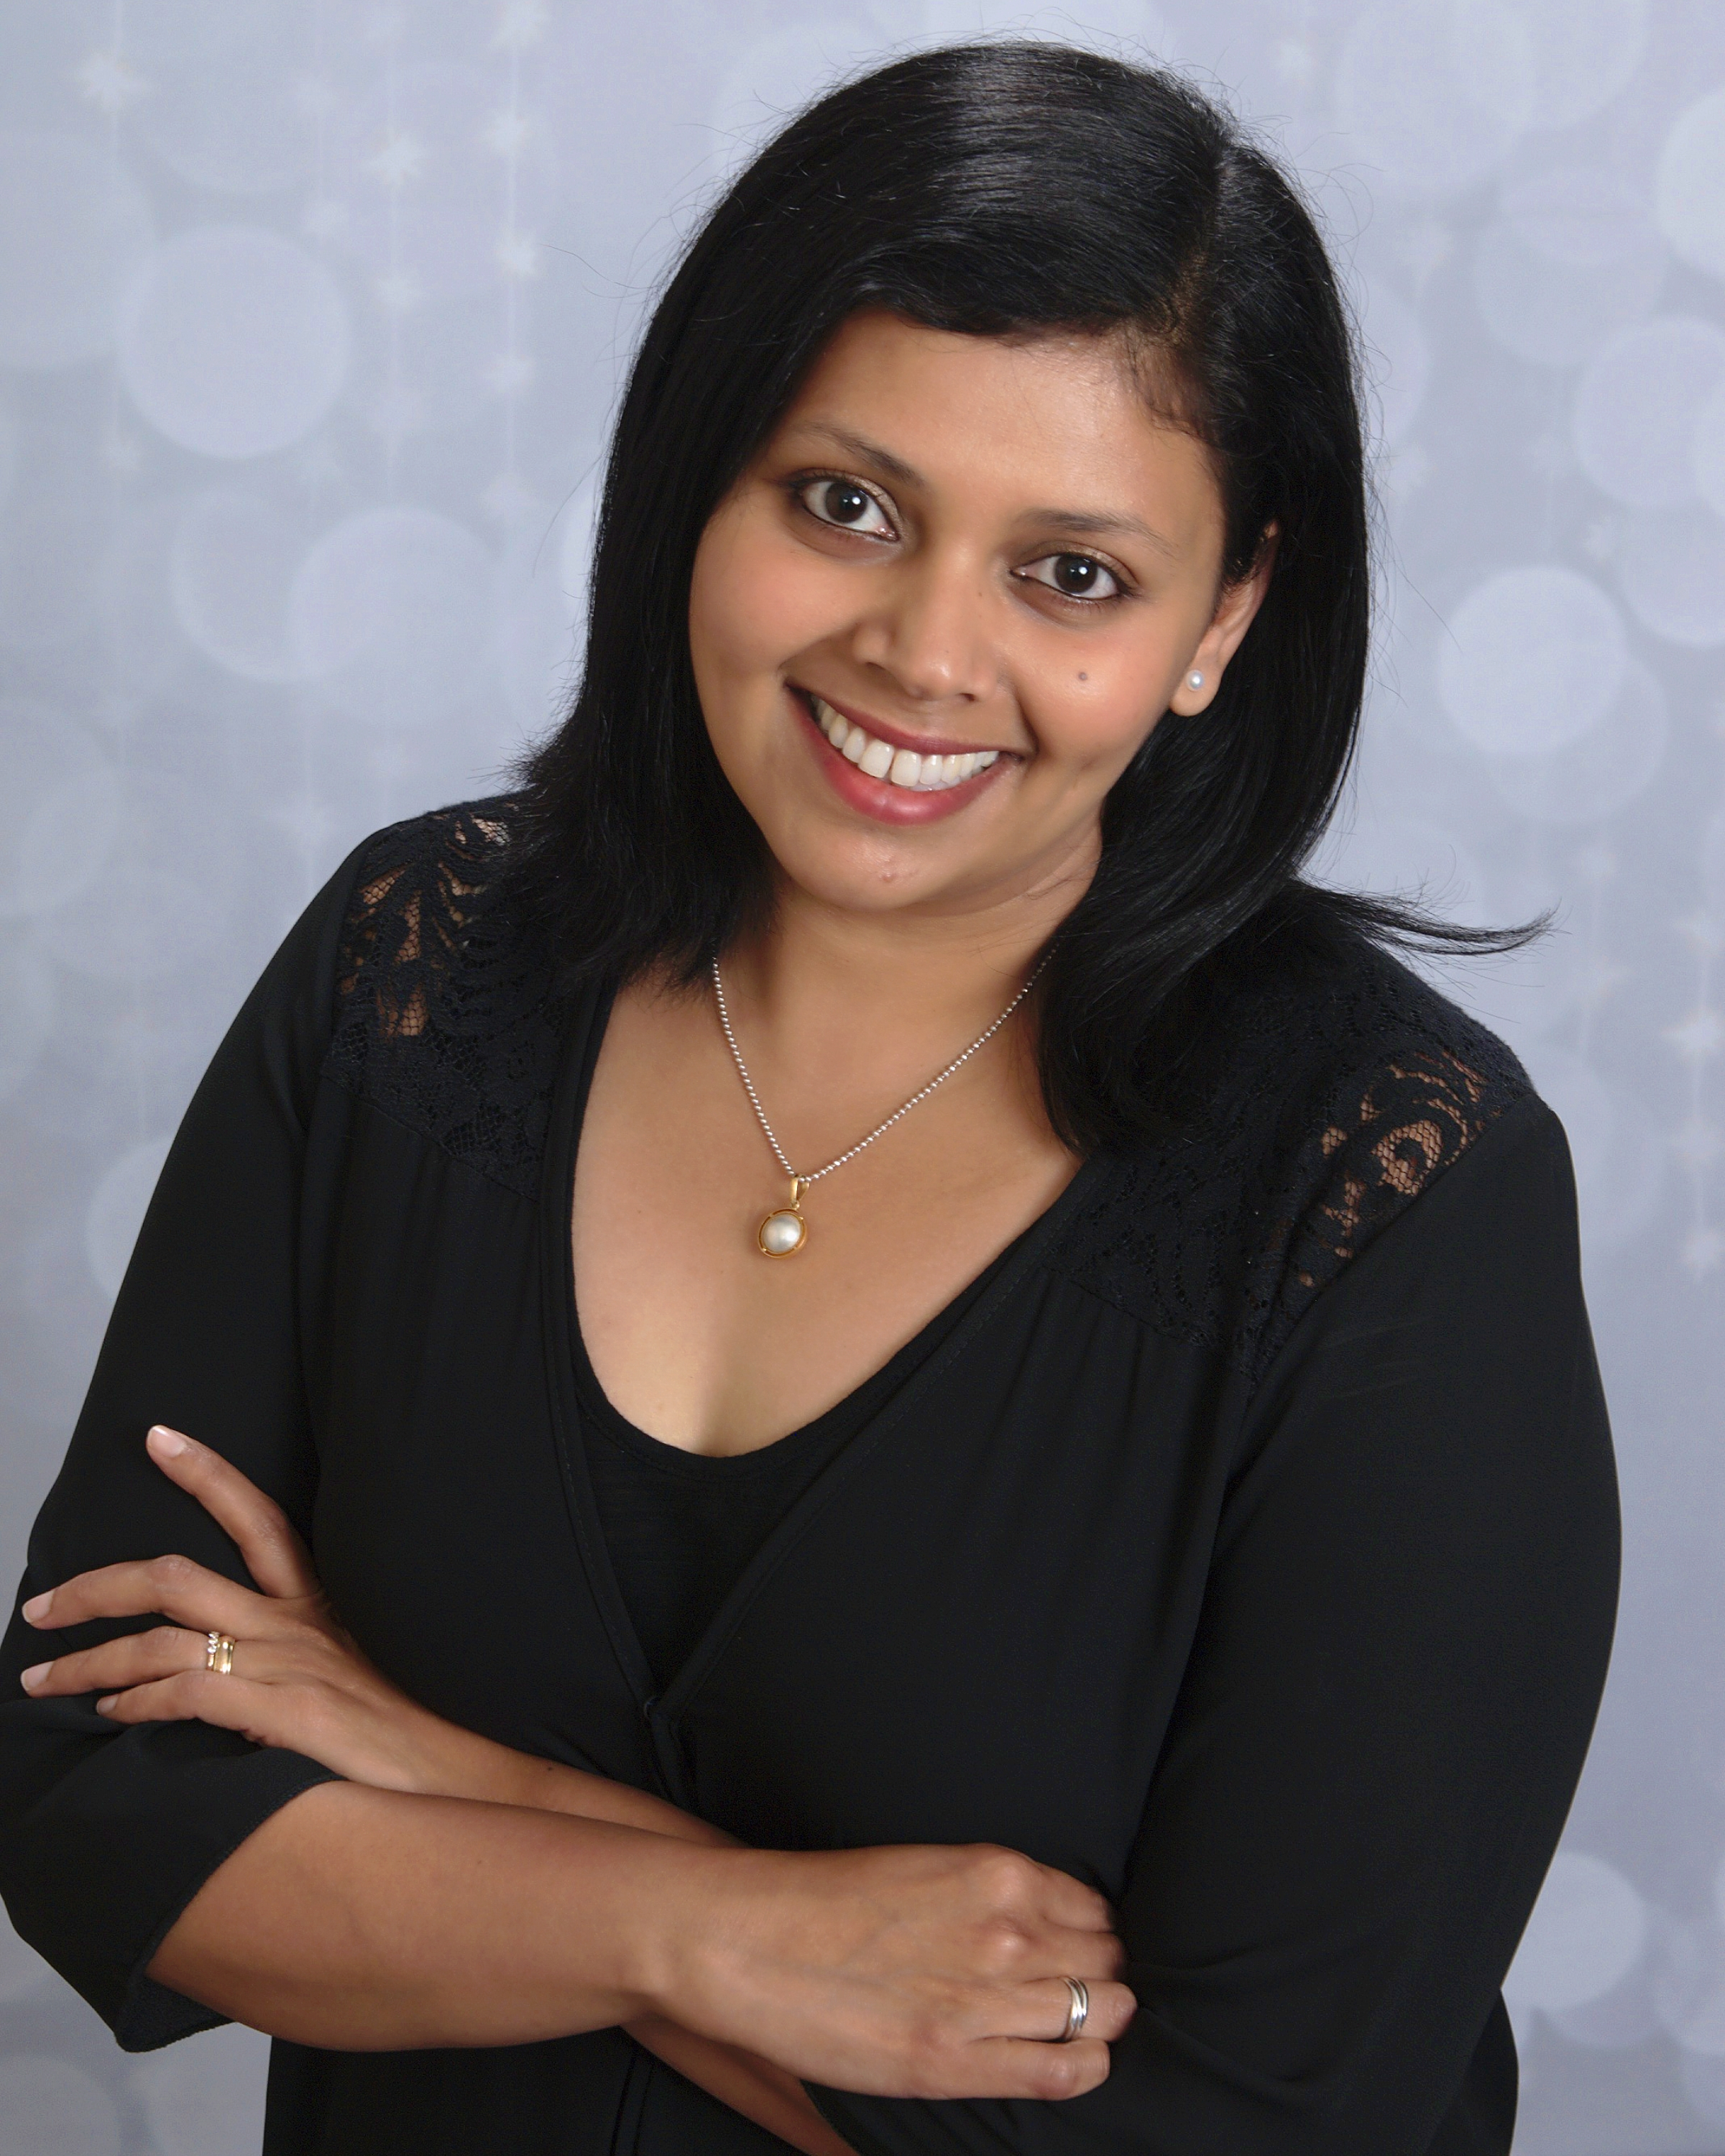 Photo: Harini Sampath, Ph.D.